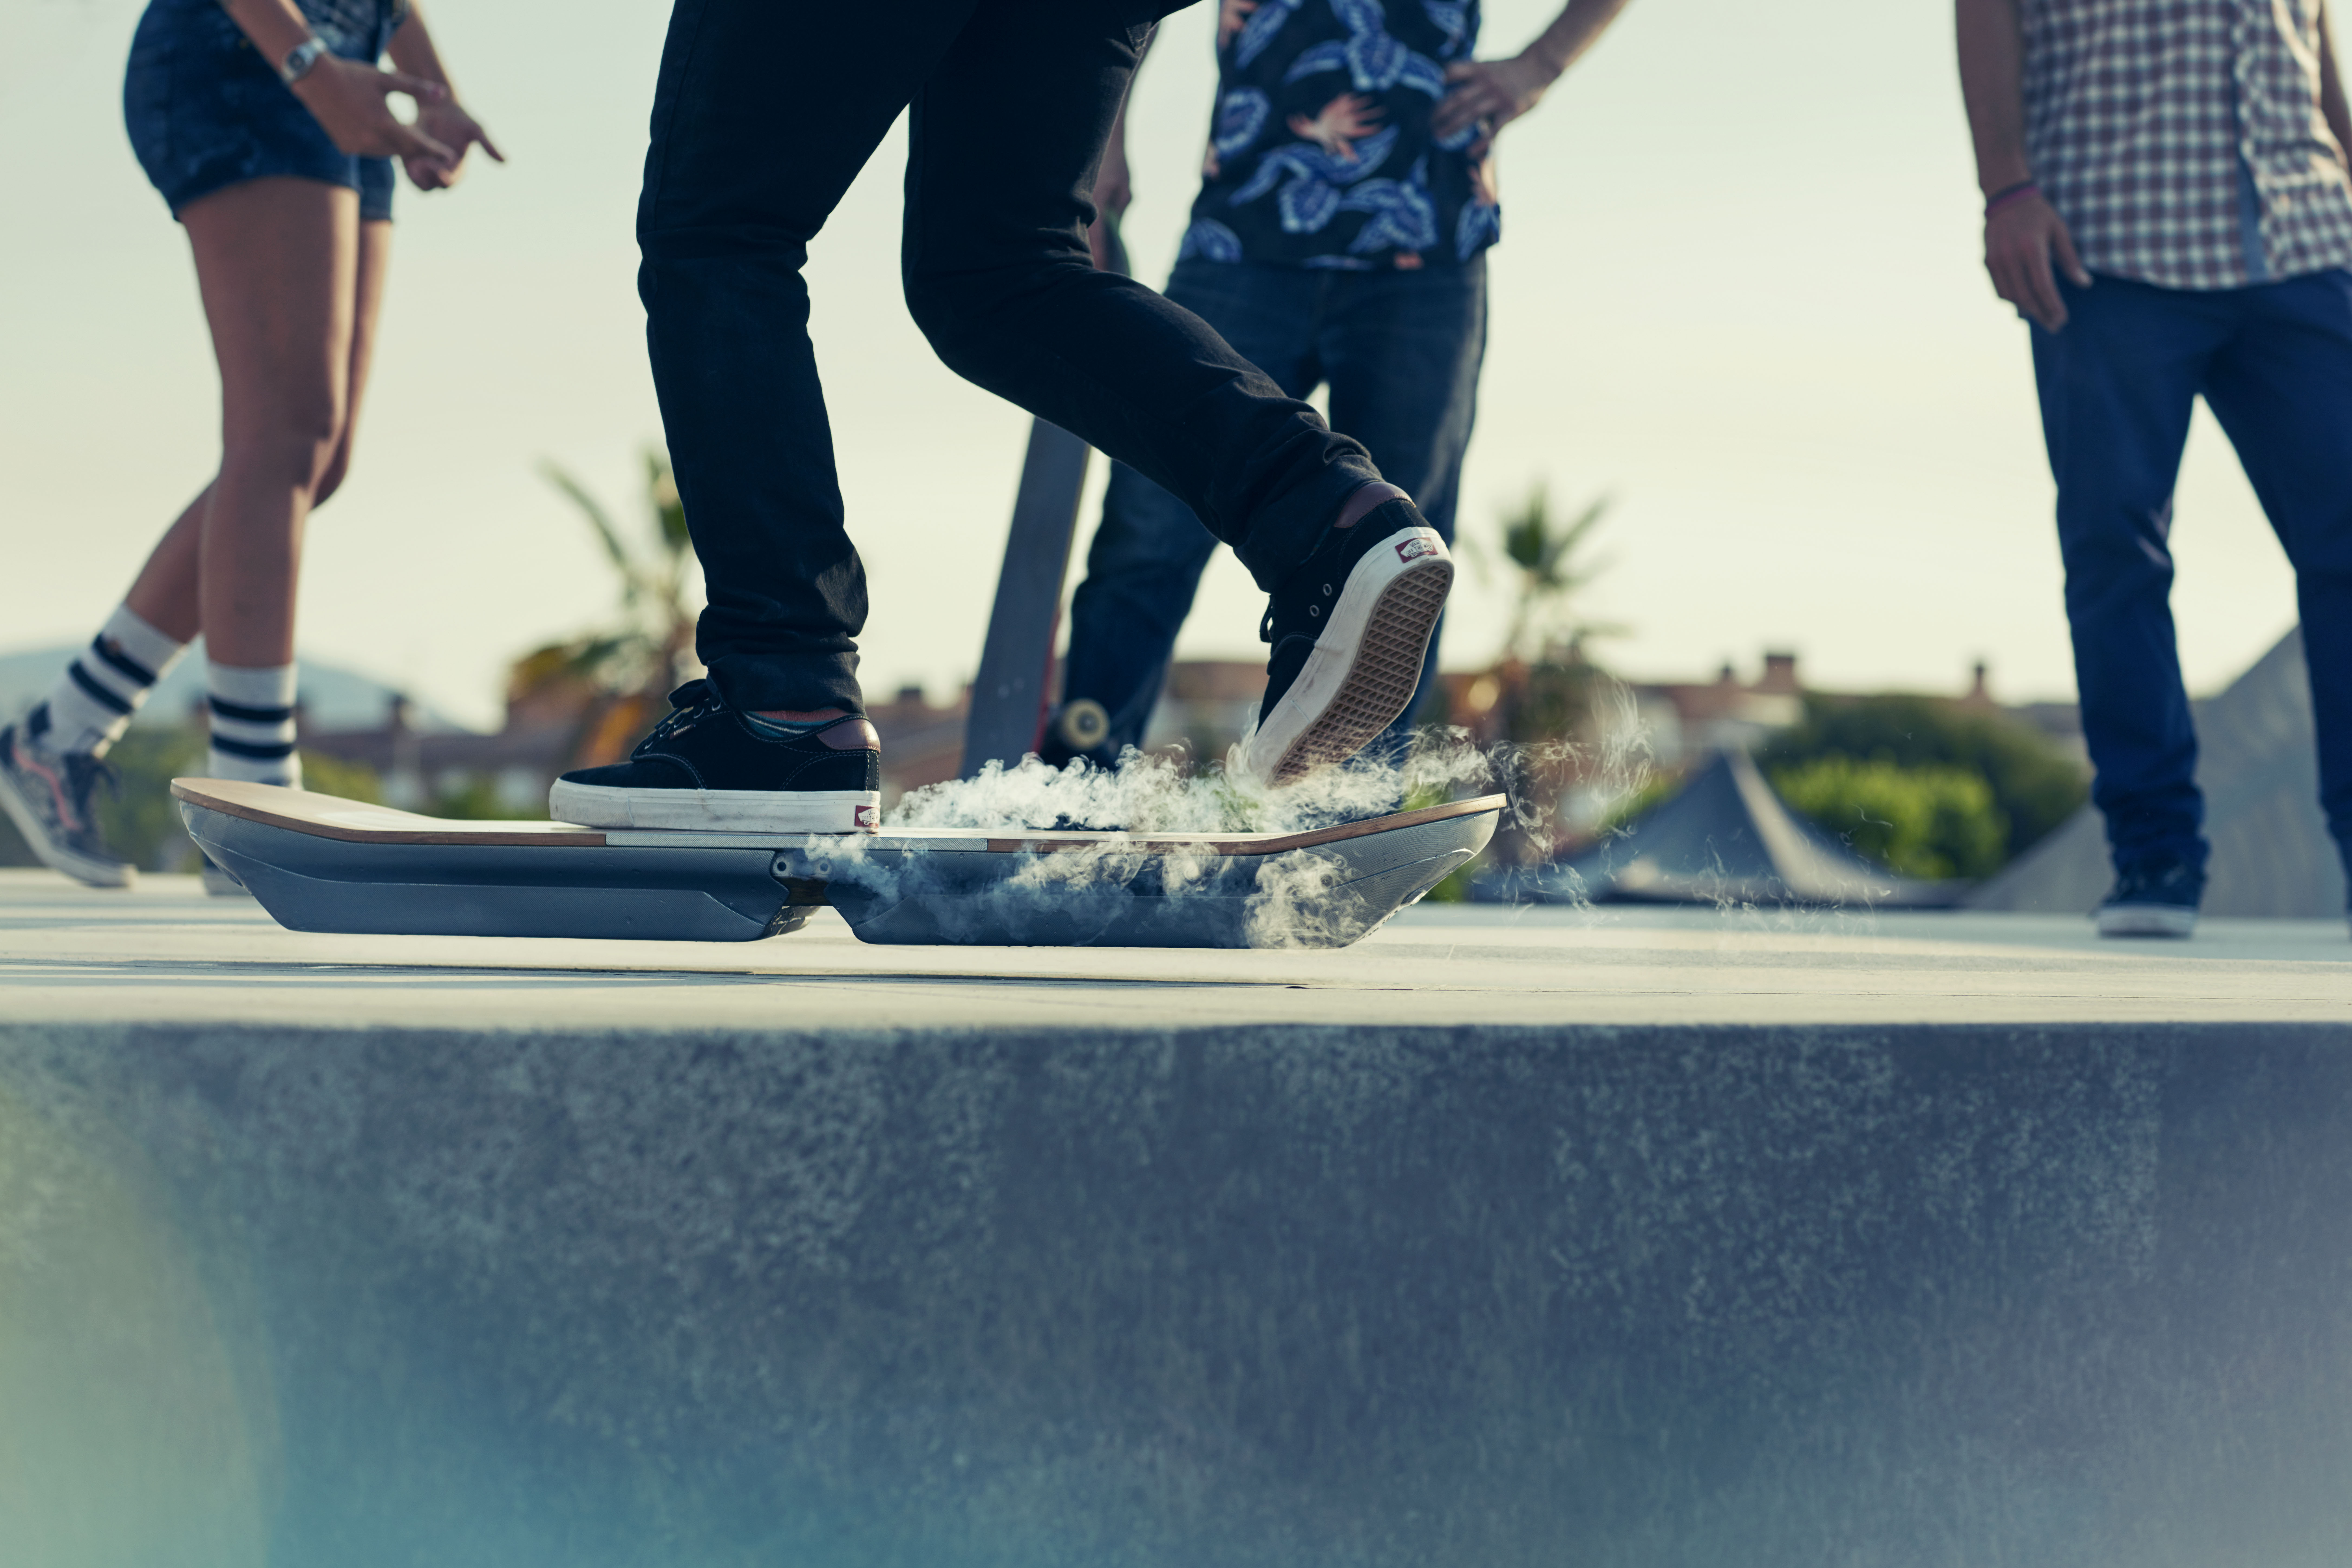 Real Working Hoverboard Lexus Hoverboard Inspired By Back To The Future Us News